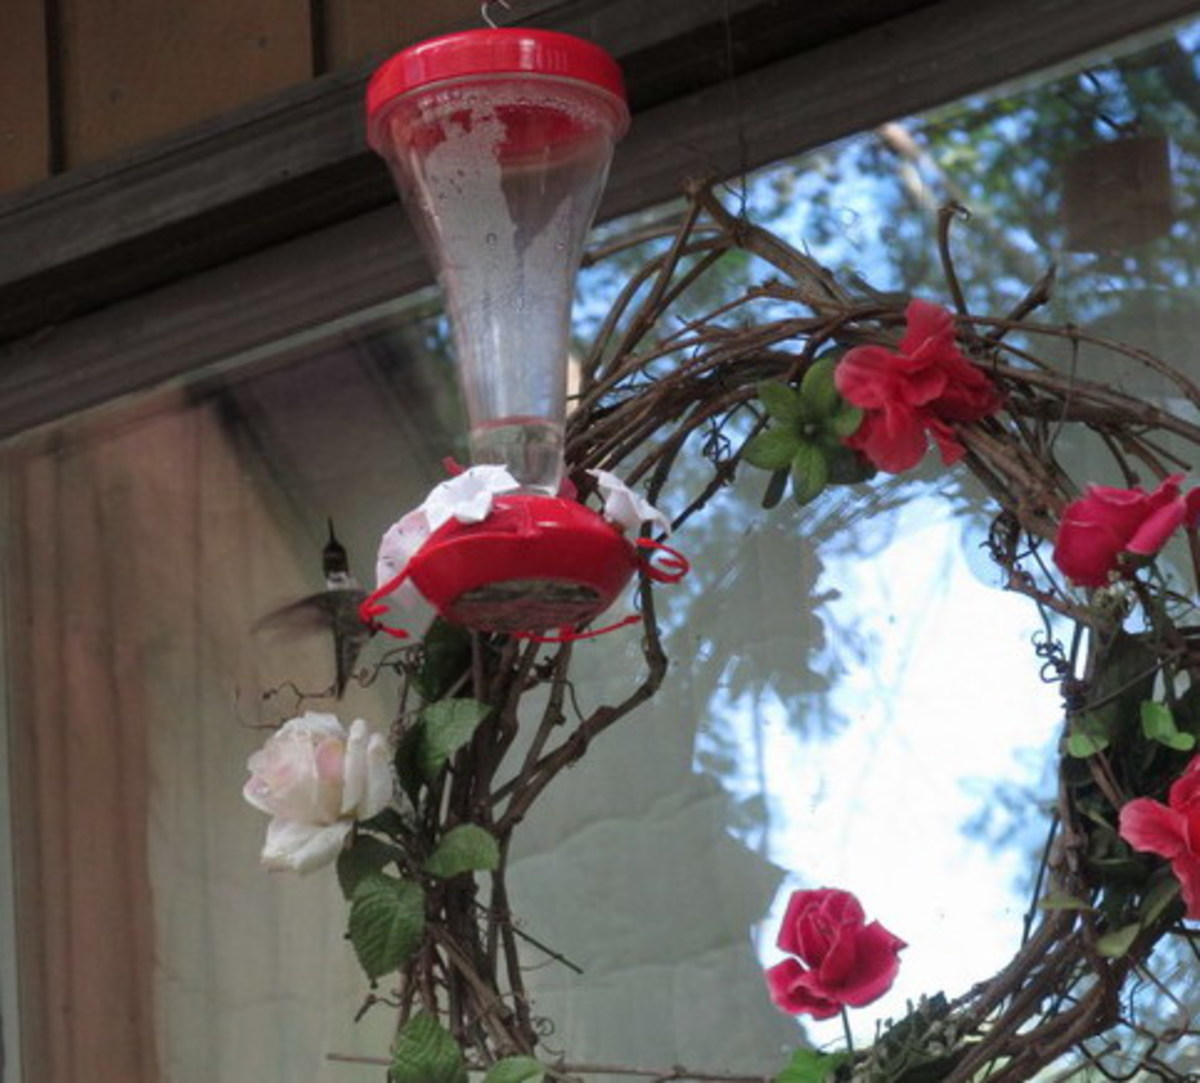 Male Ruby Throated Hummingbird likes the nectar feeder placed in front of my rose wreath!